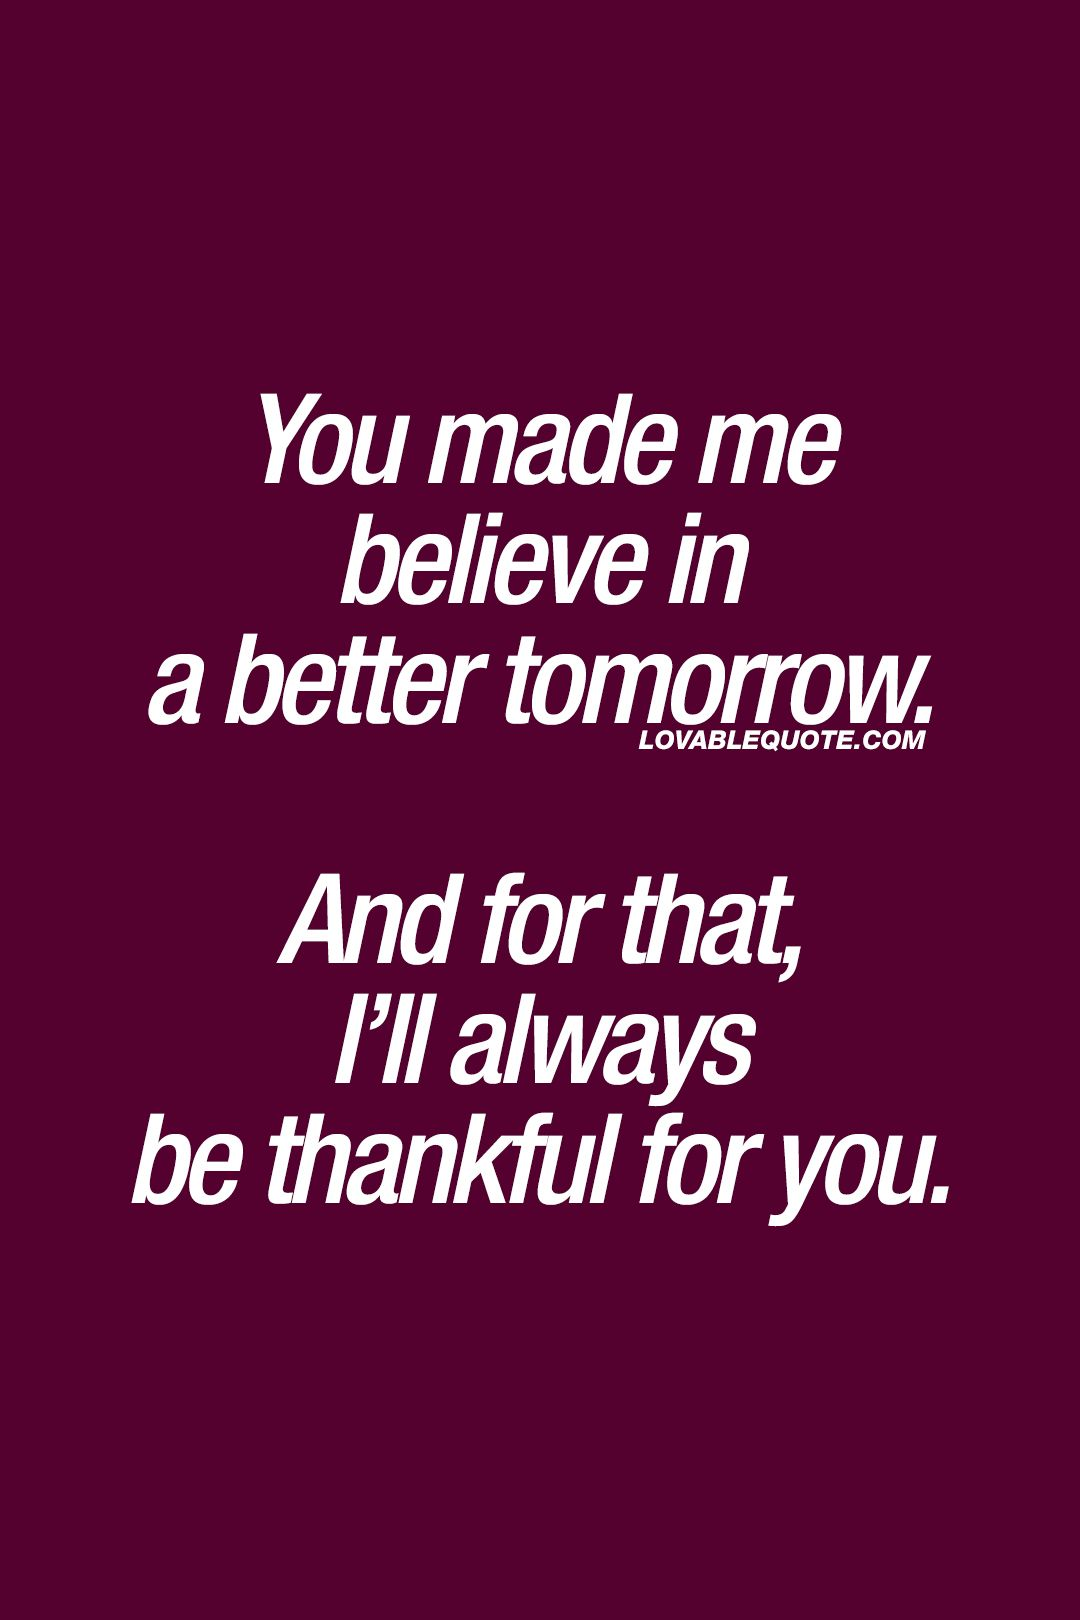 Quotes About Being Thankful For Someone for him and her: You made me believe in a better tomorrow  Quotes About Being Thankful For Someone